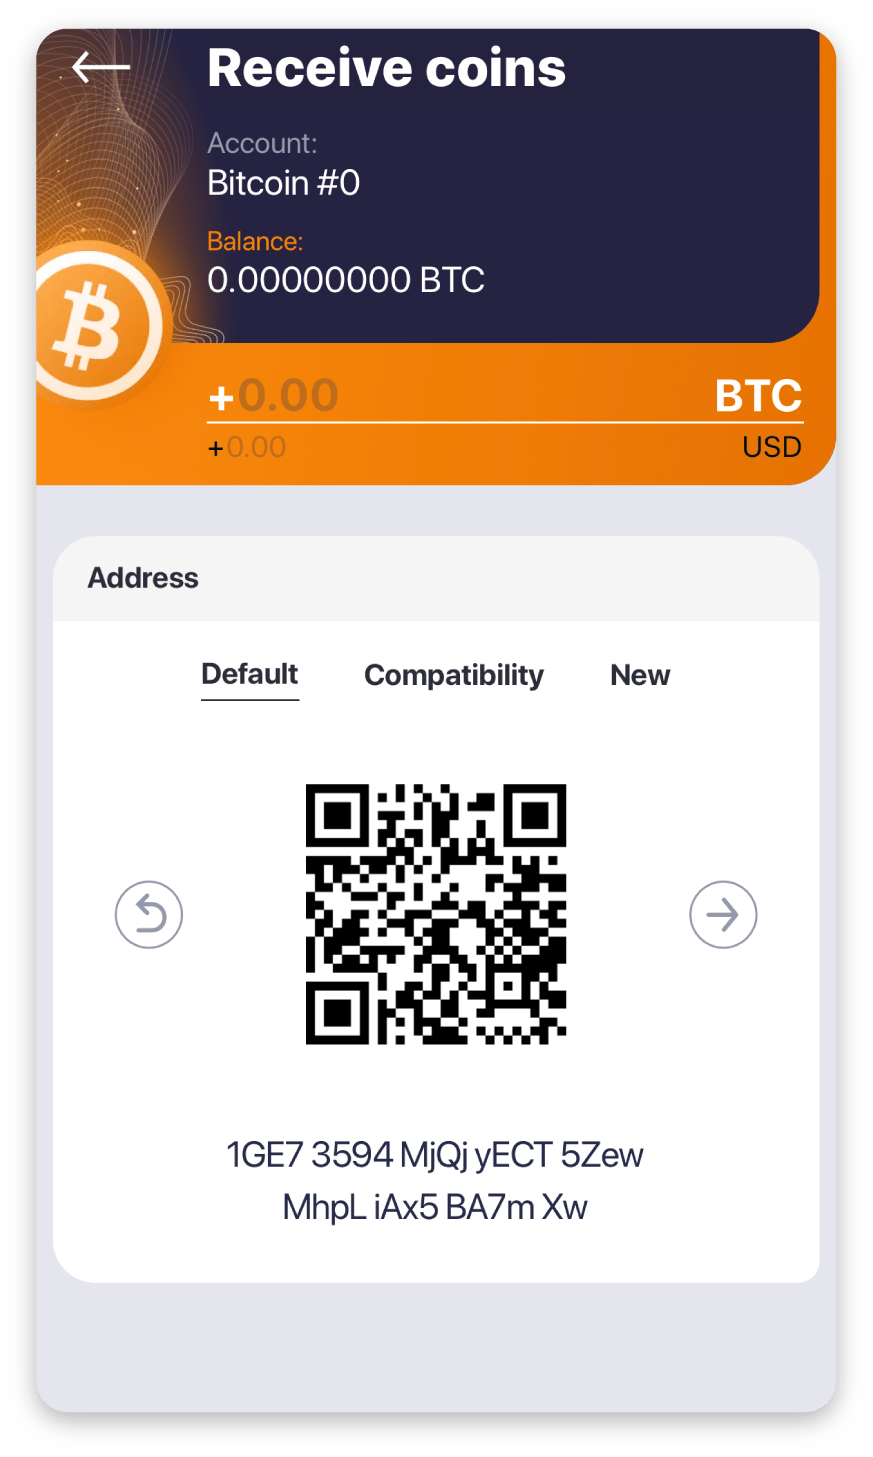 How can I receive funds to my wallet?